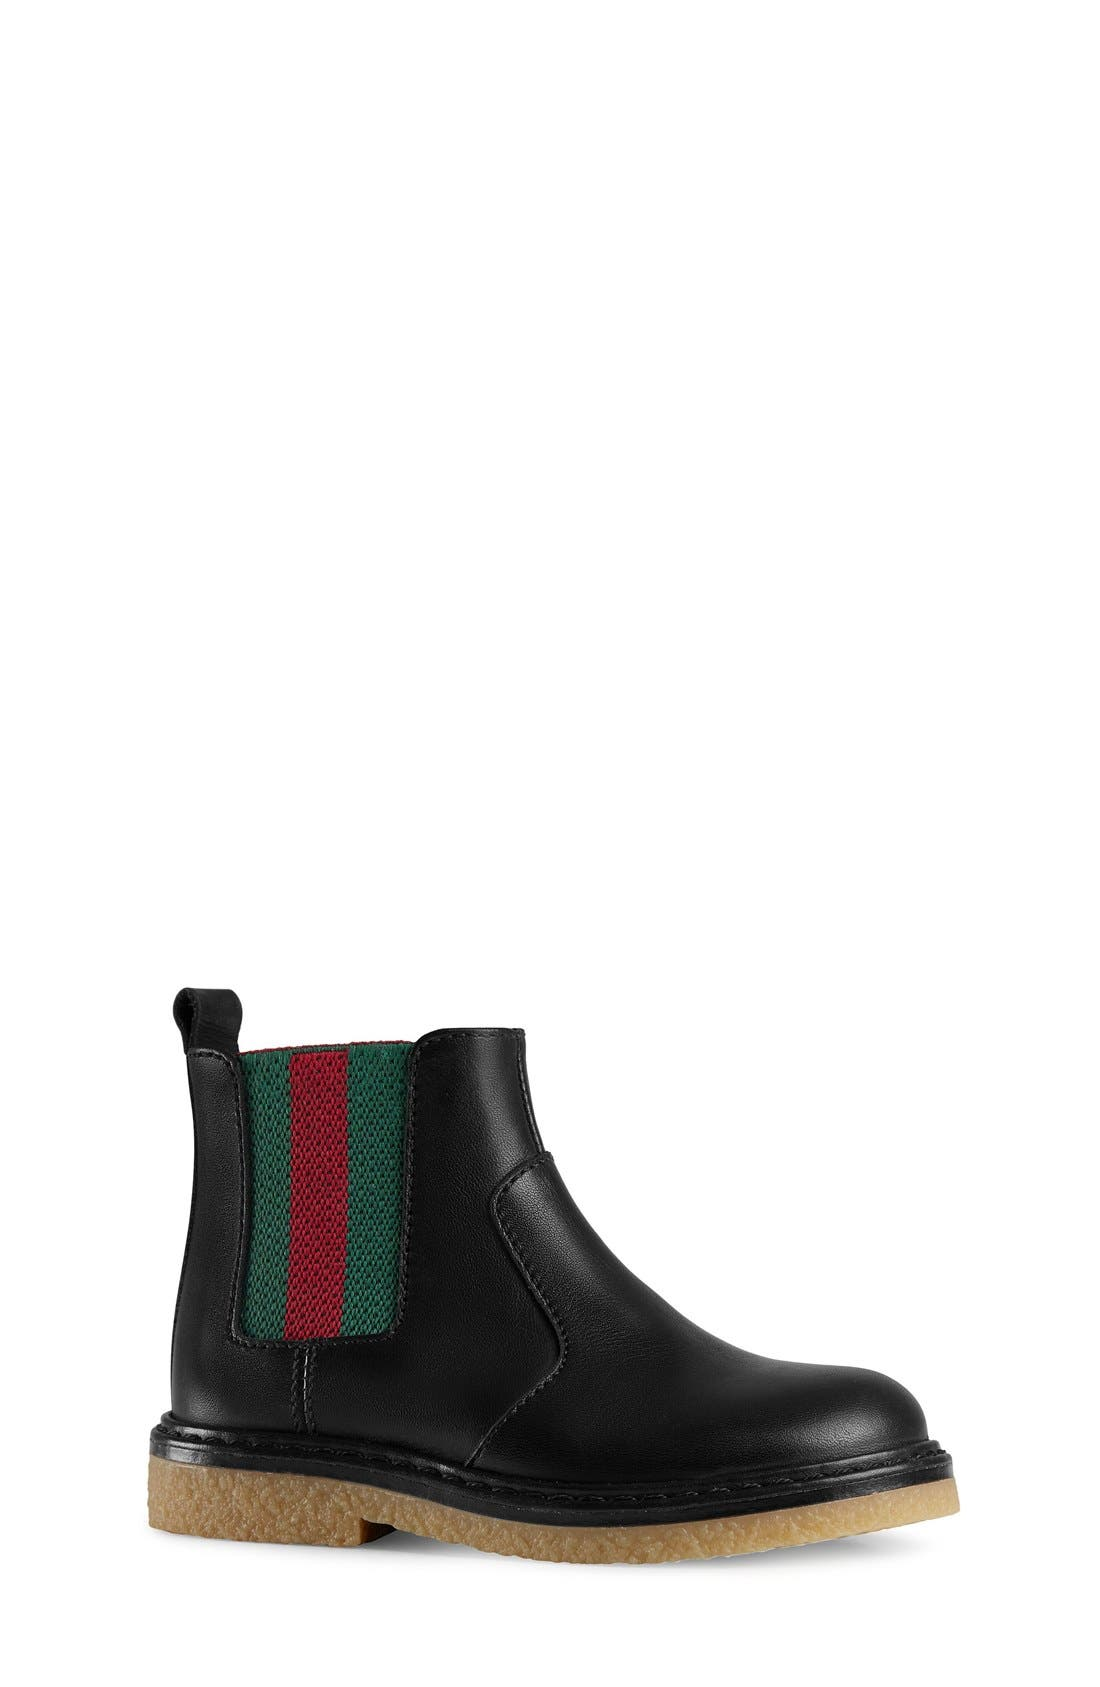 Alternate Image 1 Selected - Gucci 'Joshua' Chelsea Boot (Baby, Walker, Toddler & Little Kid)